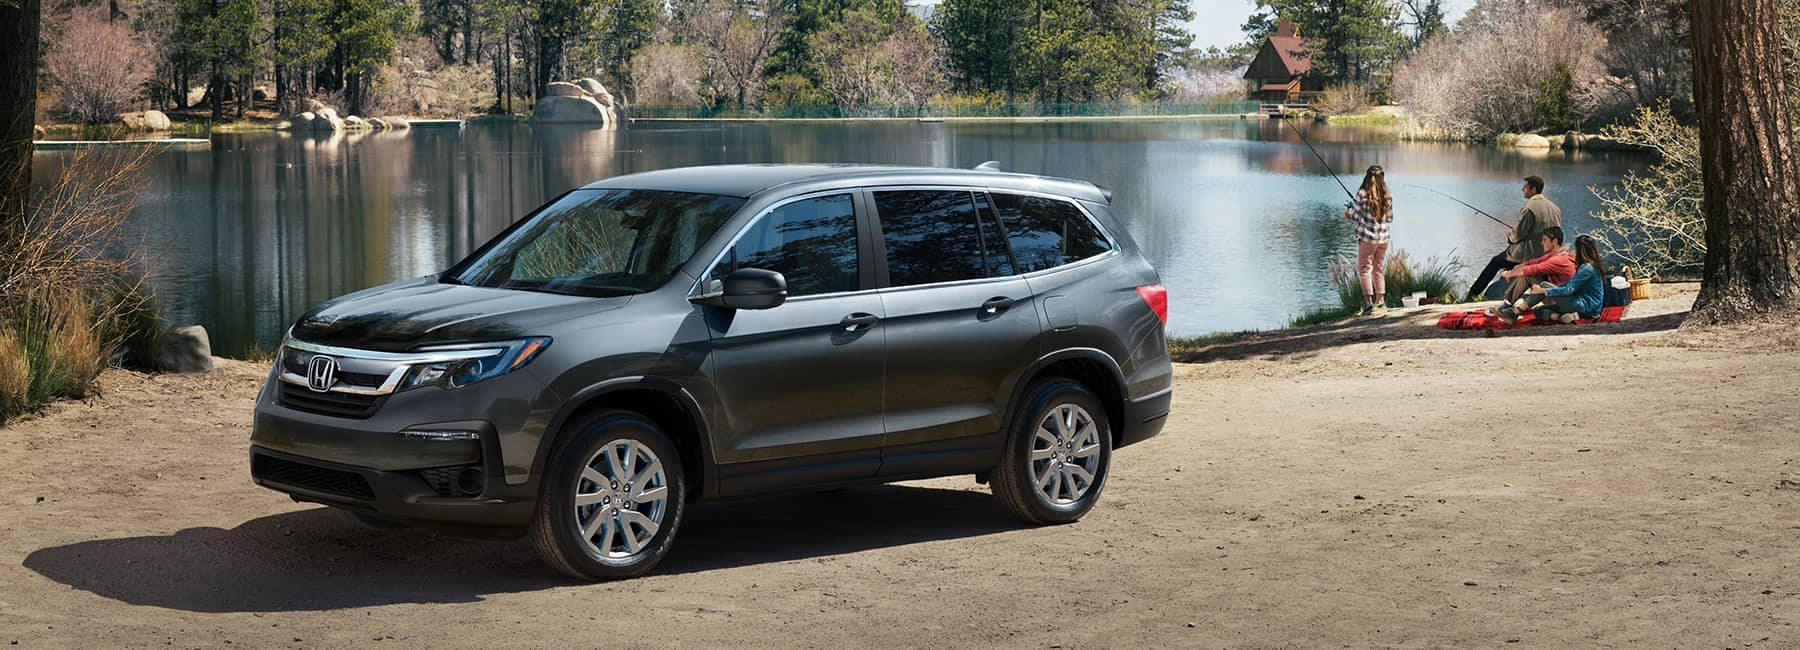 2021 Dark Grey Honda Pilot parked next to a forest lake